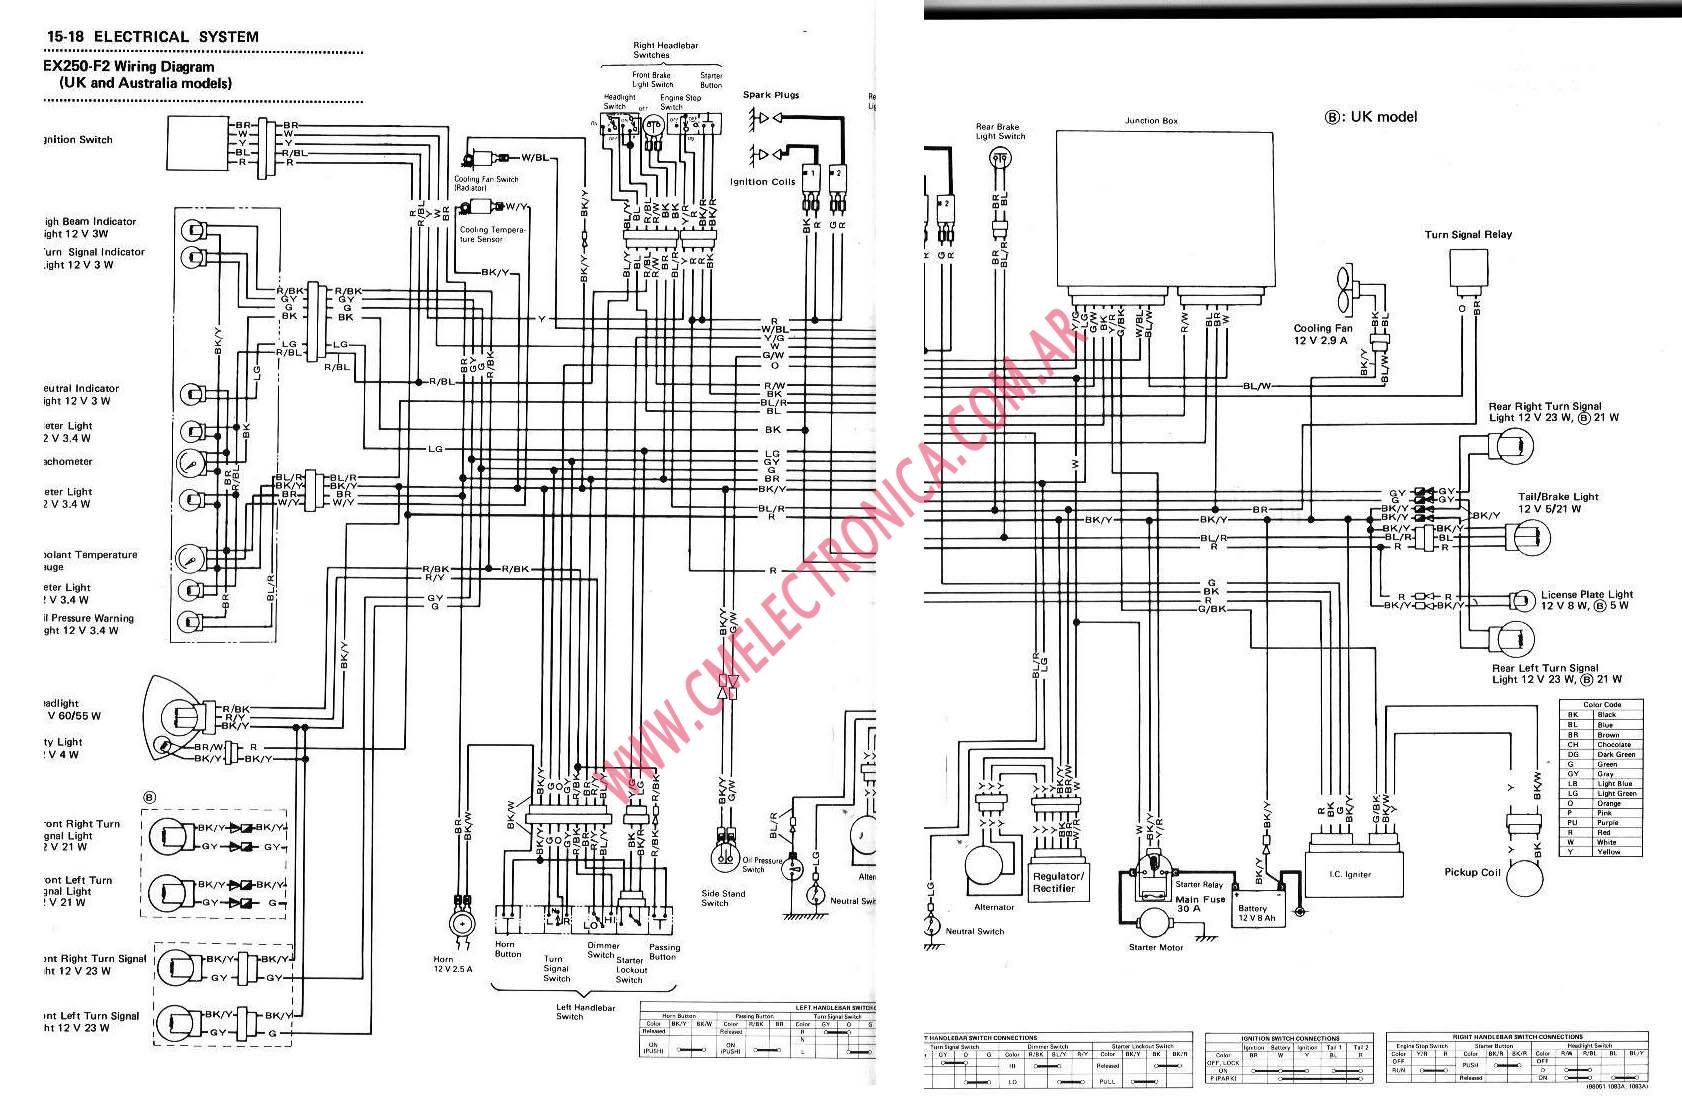 kawasaki-gpx250 Kawasaki Ninja Wiring Diagrams on ford truck wiring diagrams, subaru wiring diagrams, ferrari wiring diagrams, bmw wiring diagrams, triumph wiring diagrams, jeep wiring diagrams, chopper wiring diagrams, kawasaki wiring schematics, piaggio wiring diagrams, nissan wiring diagrams, mitsubishi pajero wiring diagrams, yamaha wiring diagrams, ktm wiring diagrams, honda wiring diagrams, harley wiring diagrams, kawasaki vulcan 900 wiring diagram, scooter wiring diagrams, kawasaki prairie 360 wiring-diagram, kawasaki vulcan 1500 wiring diagram, motorcycle wiring diagrams,